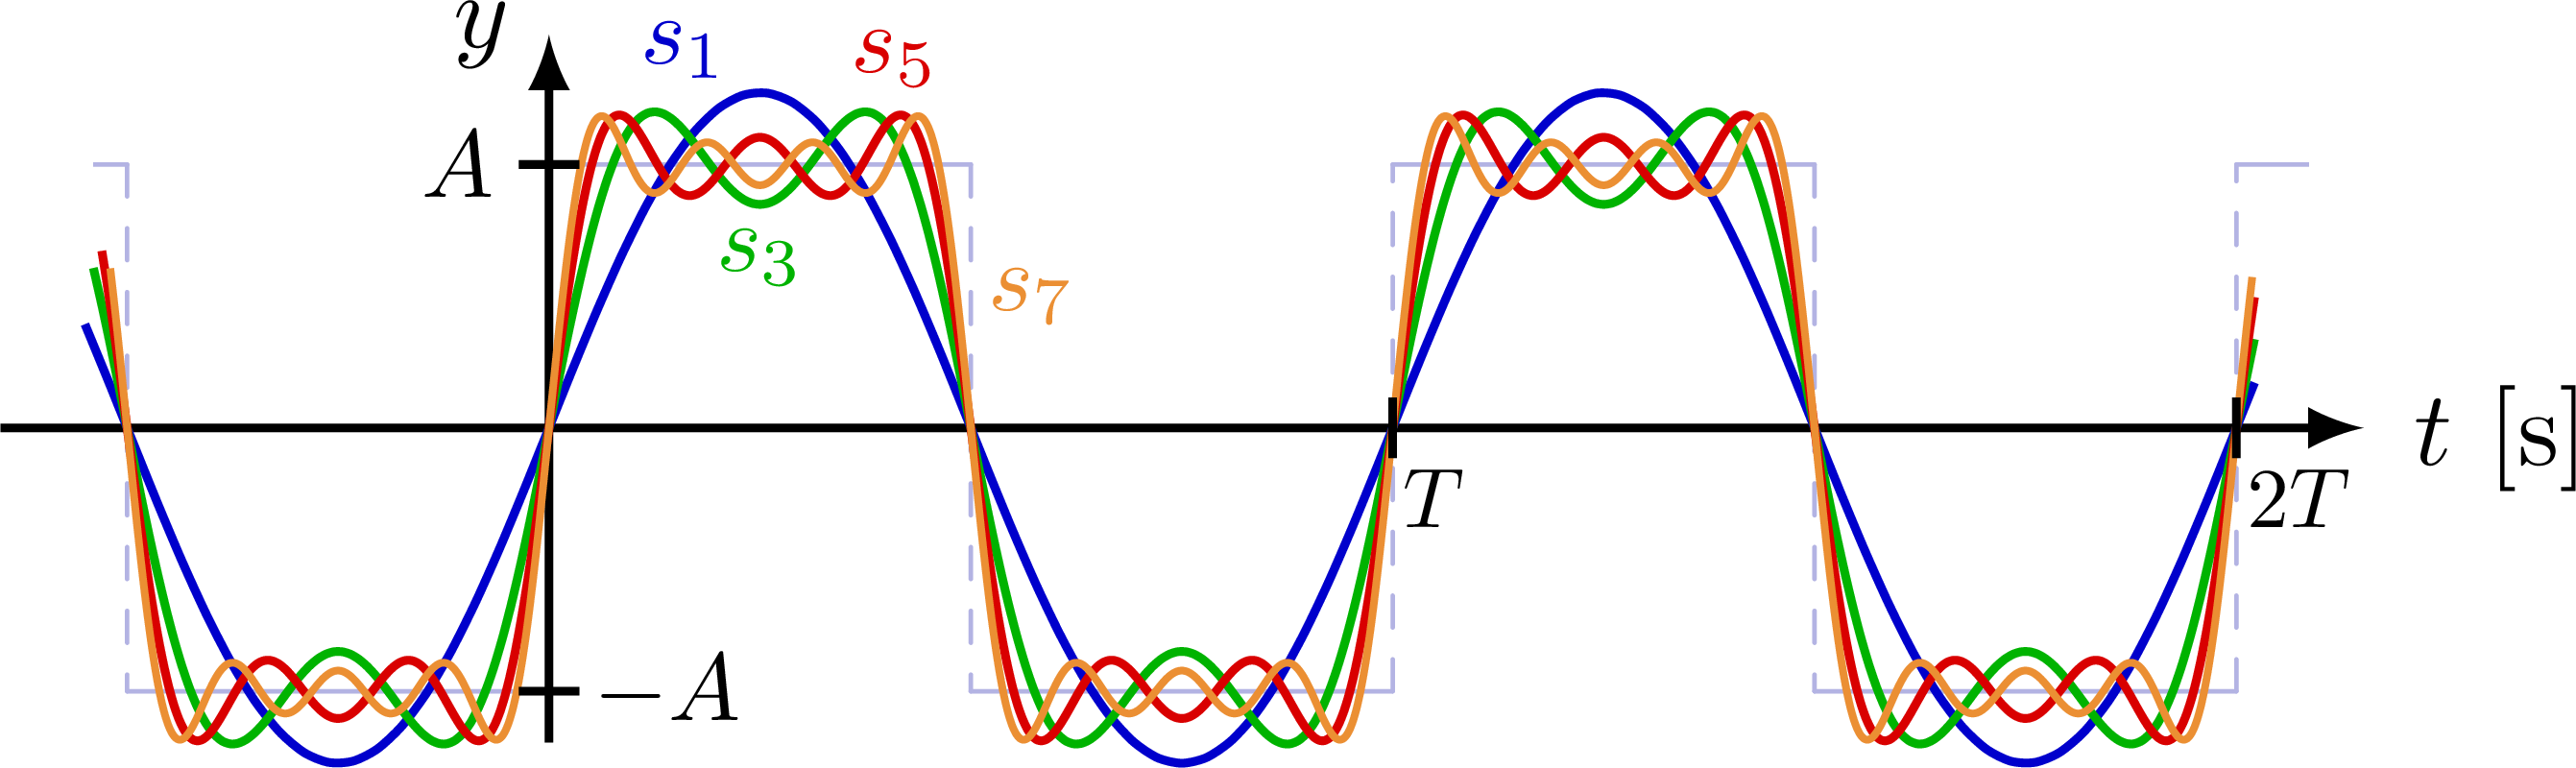 fourier_series-005.png